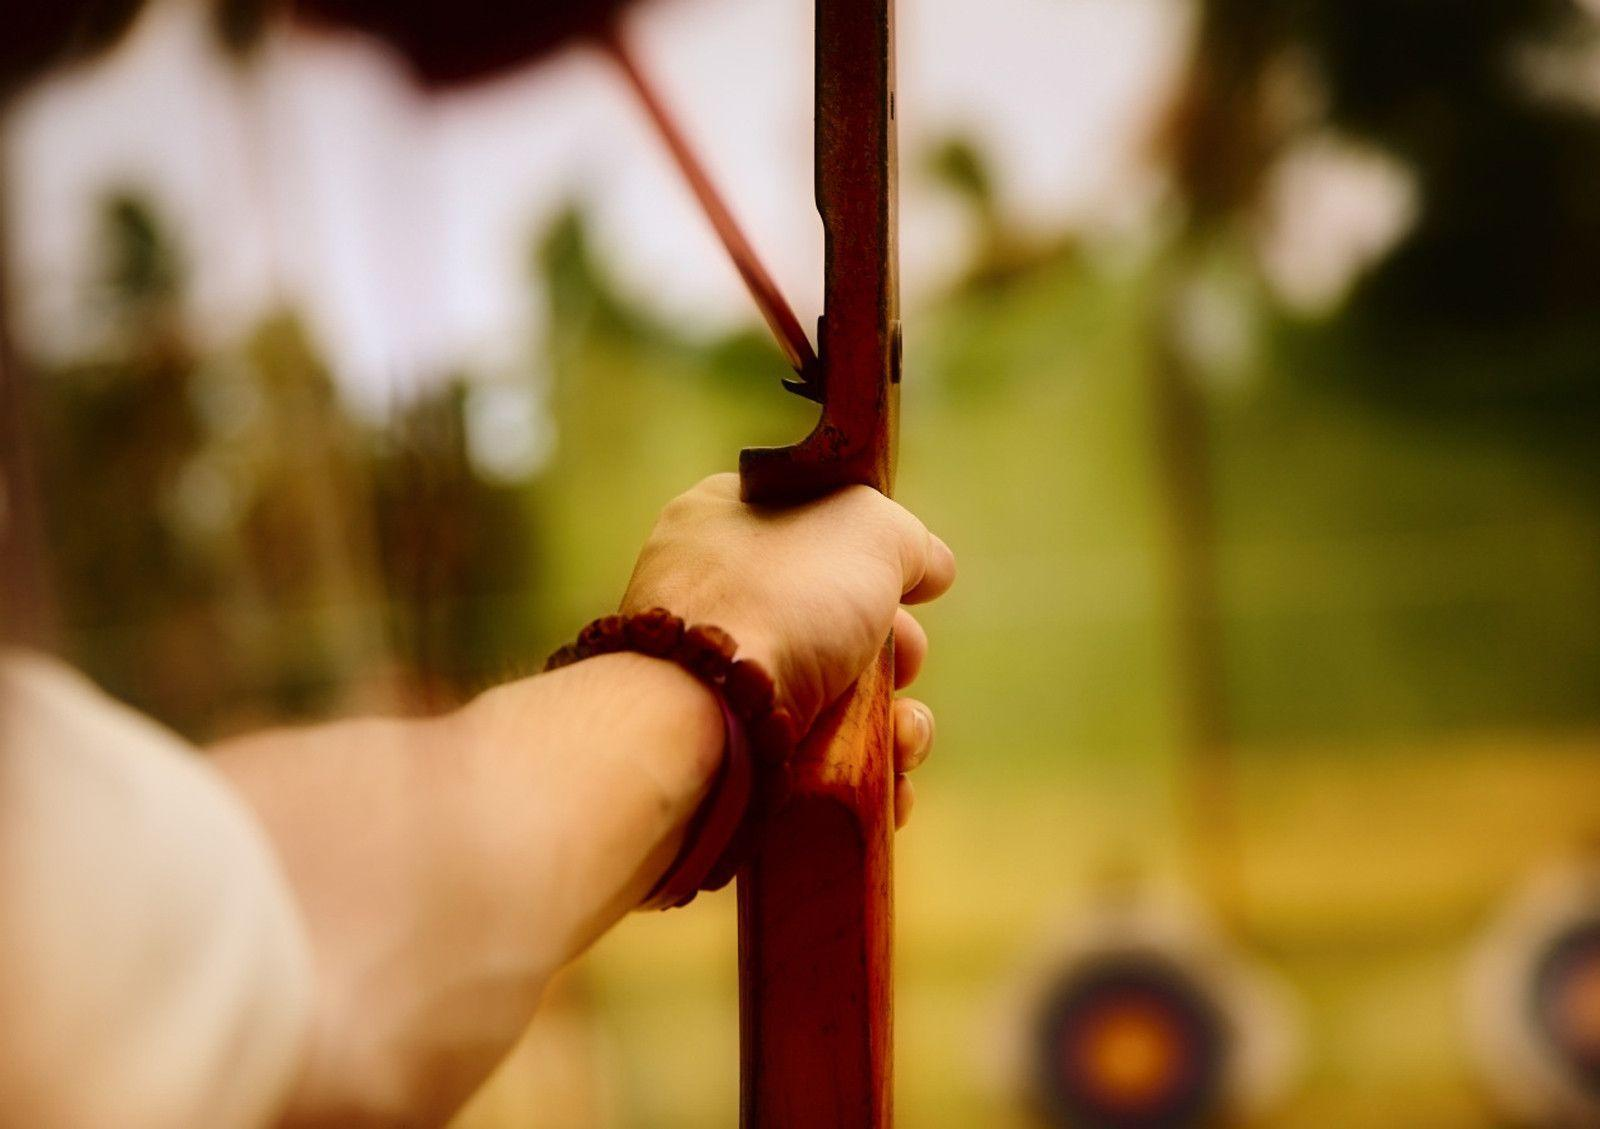 Archery Wallpapers Wallpaper Cave HD Wallpapers Download Free Images Wallpaper [1000image.com]